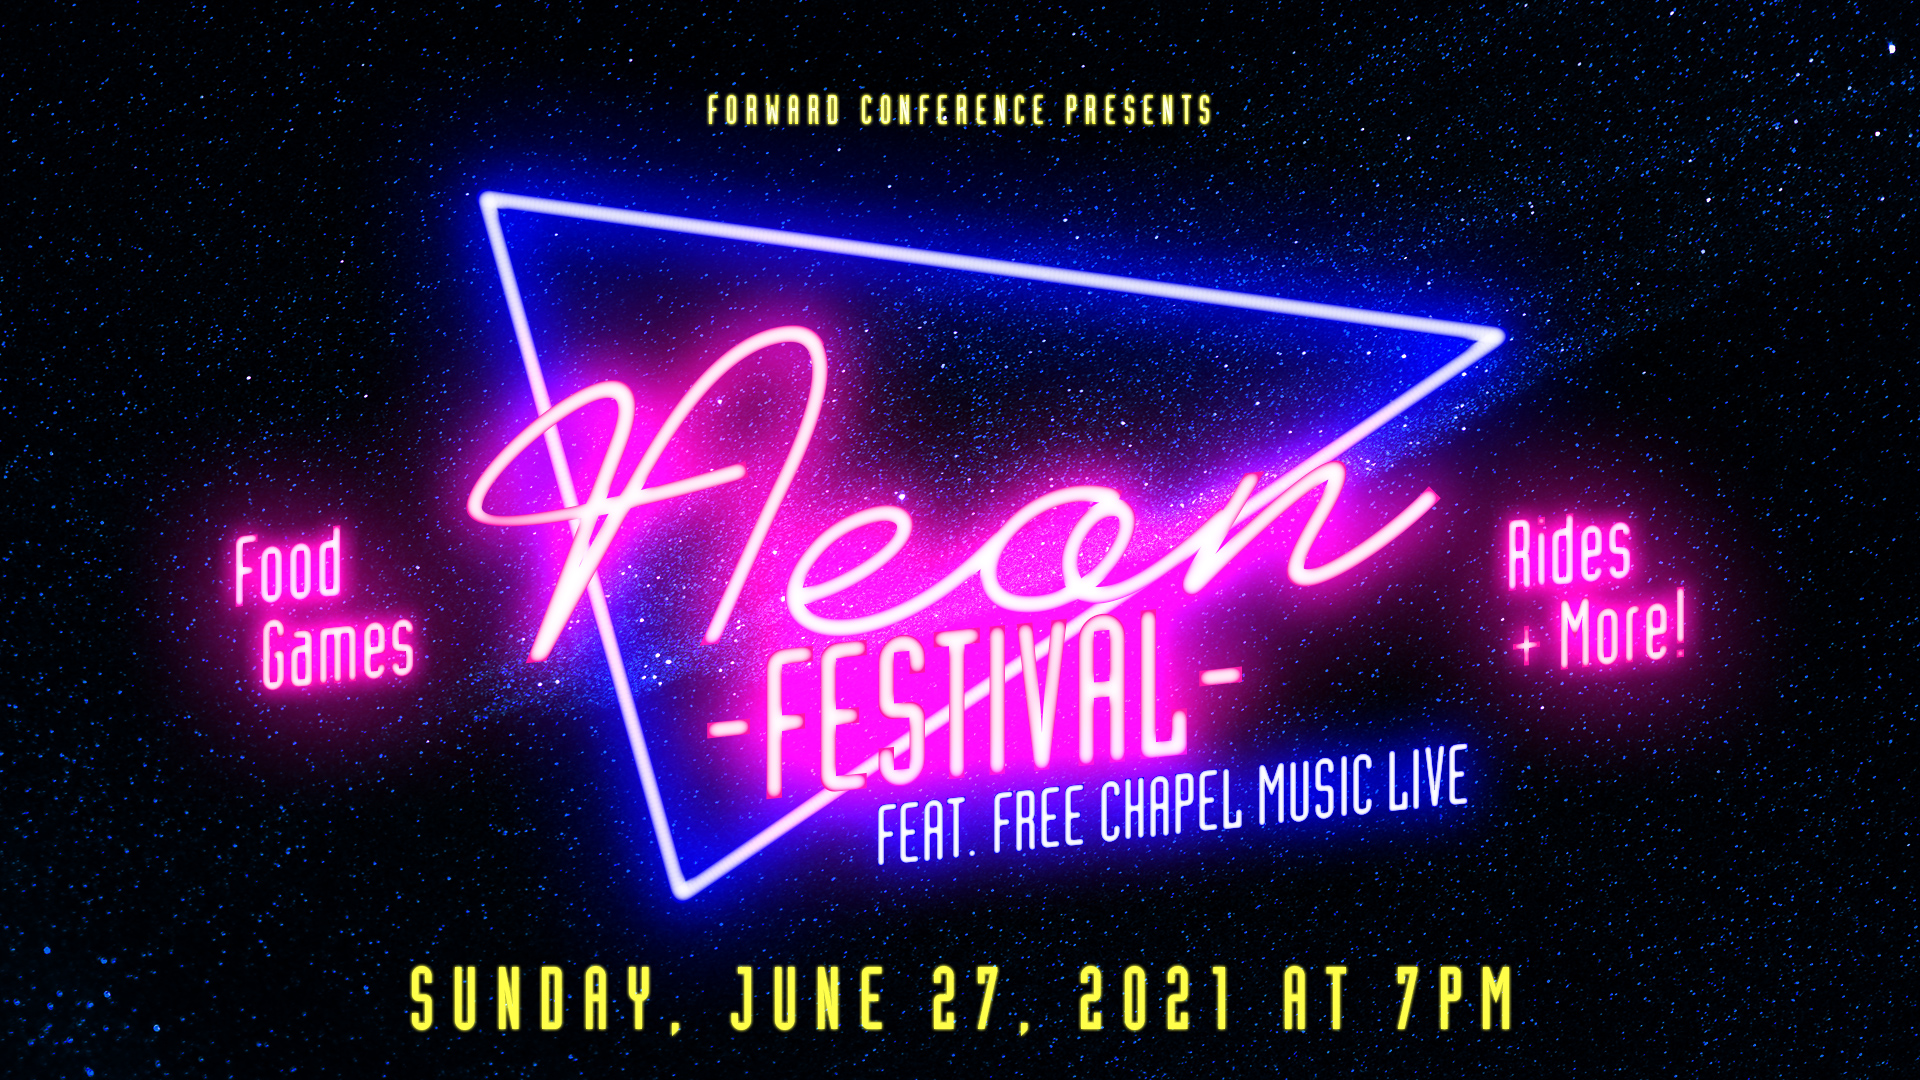 Neon Festival @ Gainesville at the Midtown campus